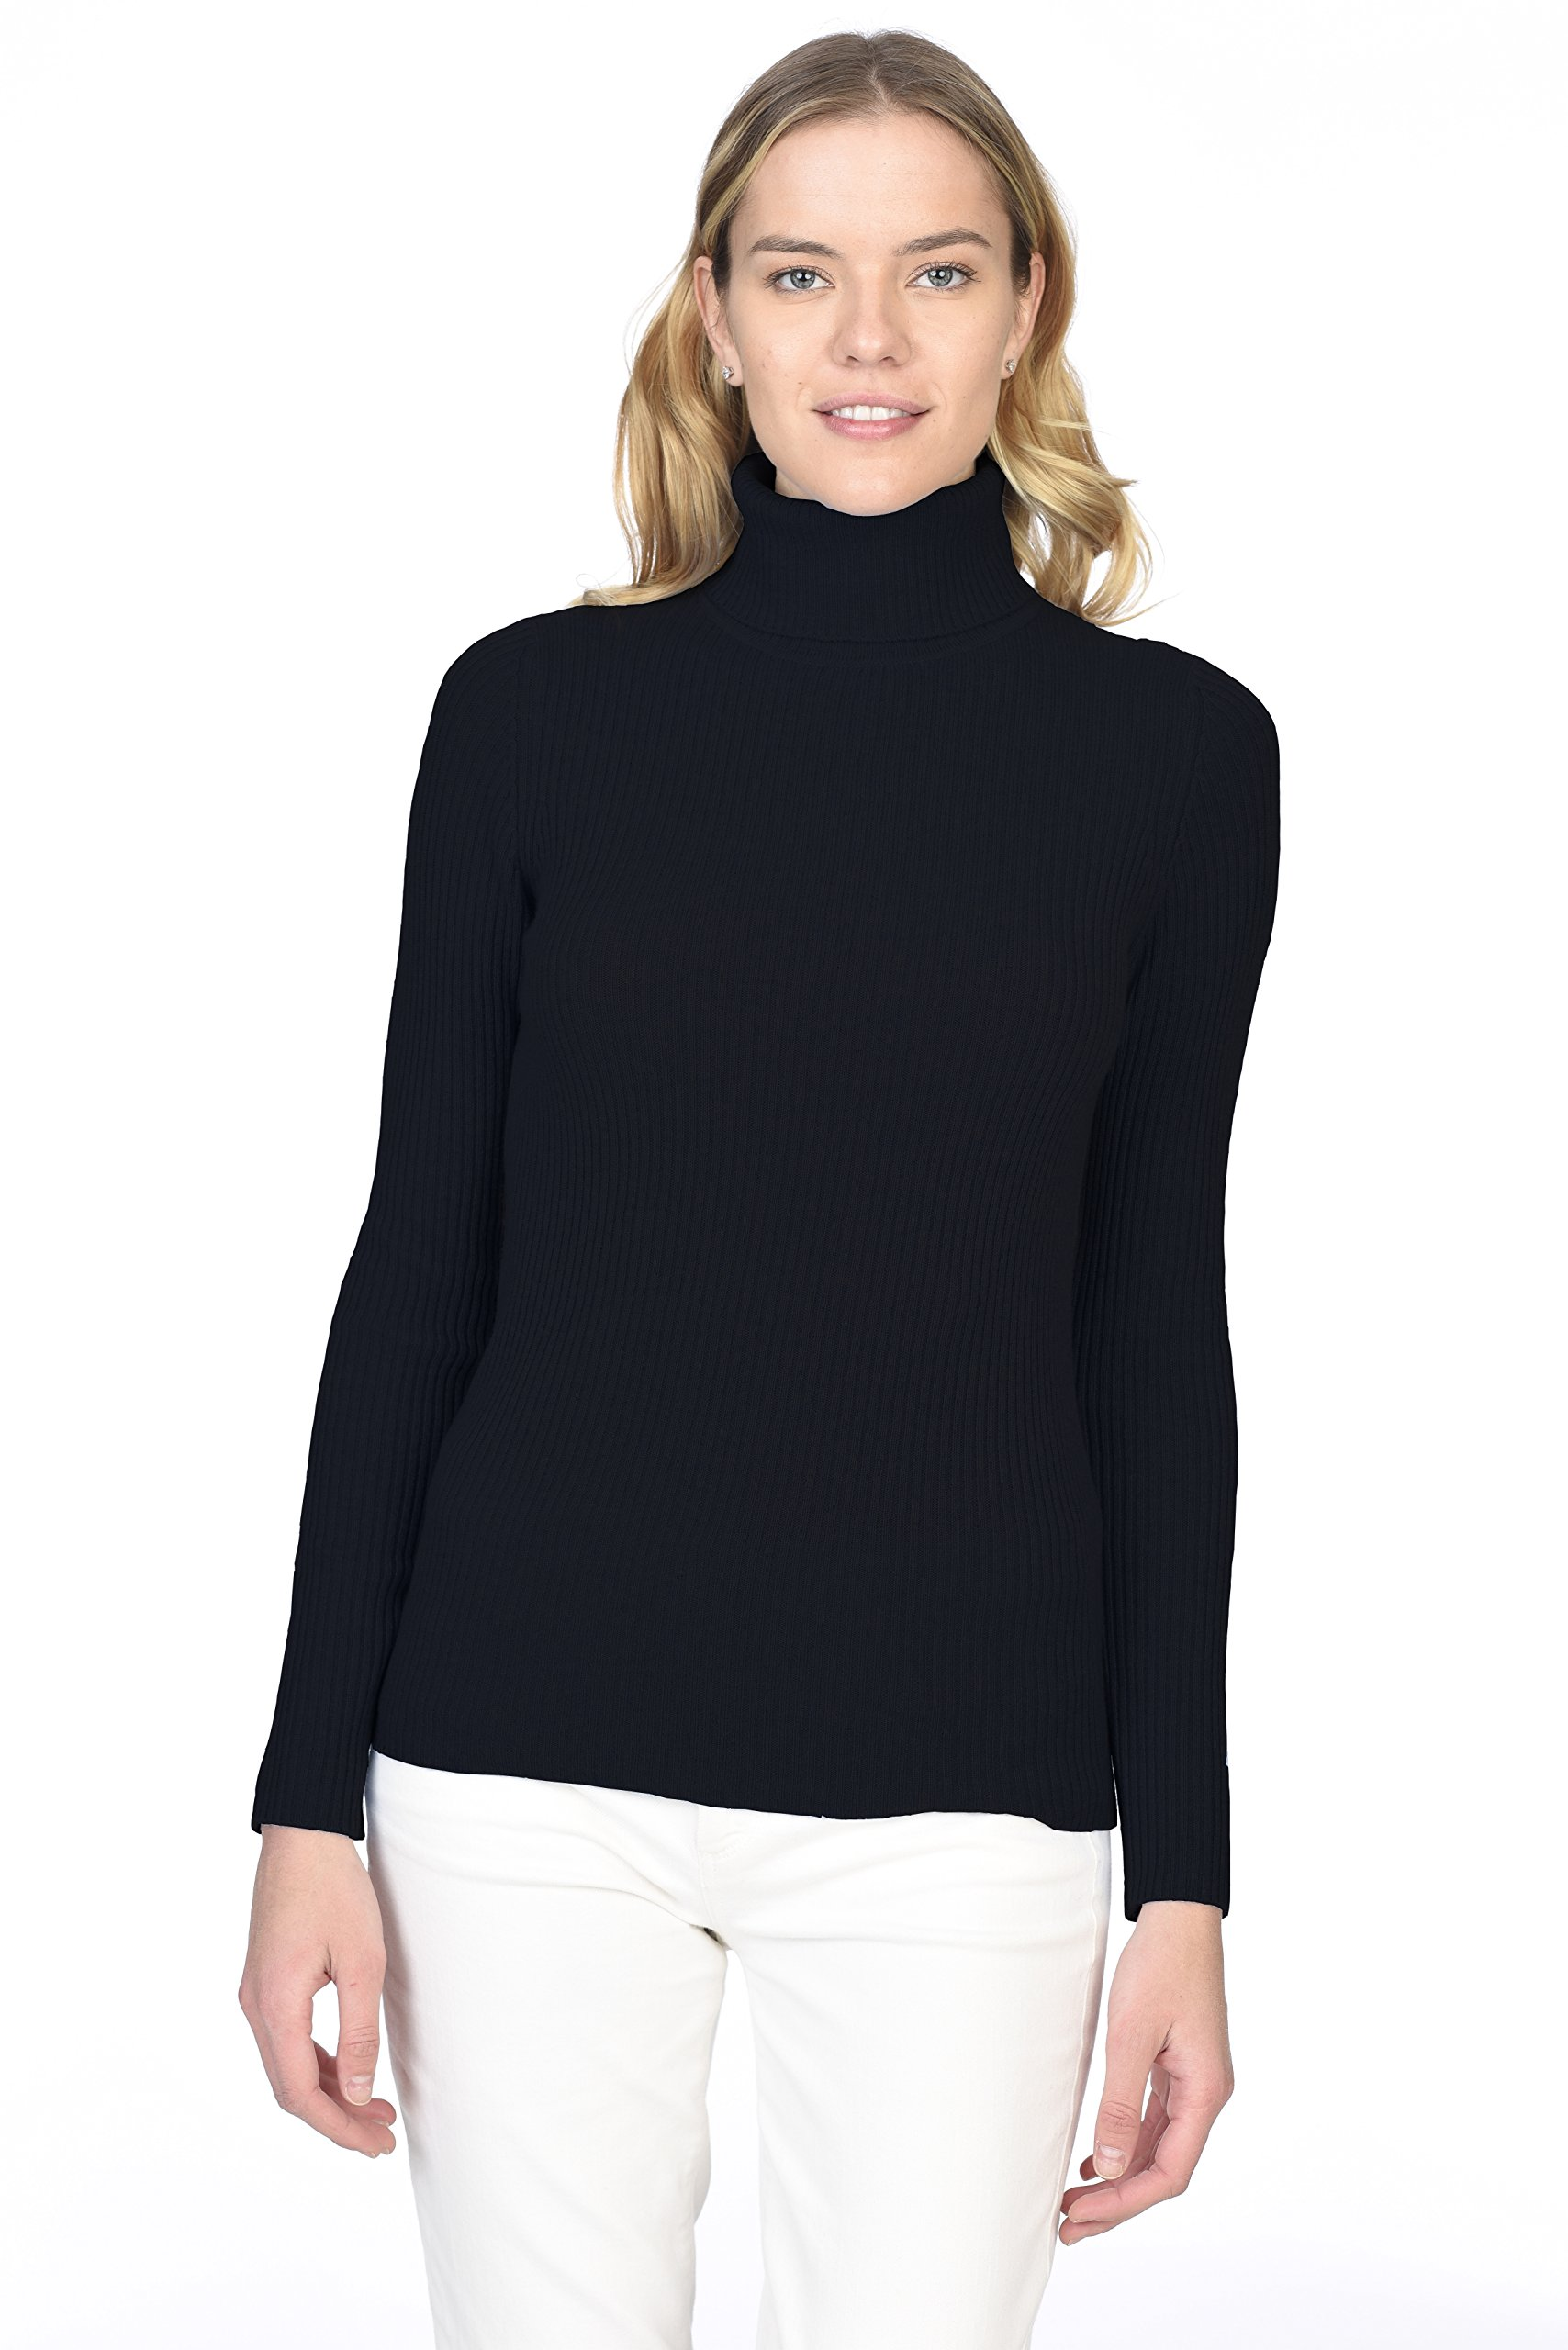 State Cashmere Women's 100% Pure Cashmere Long Sleeve Pullover Ribbed Turtleneck Sweater Black M